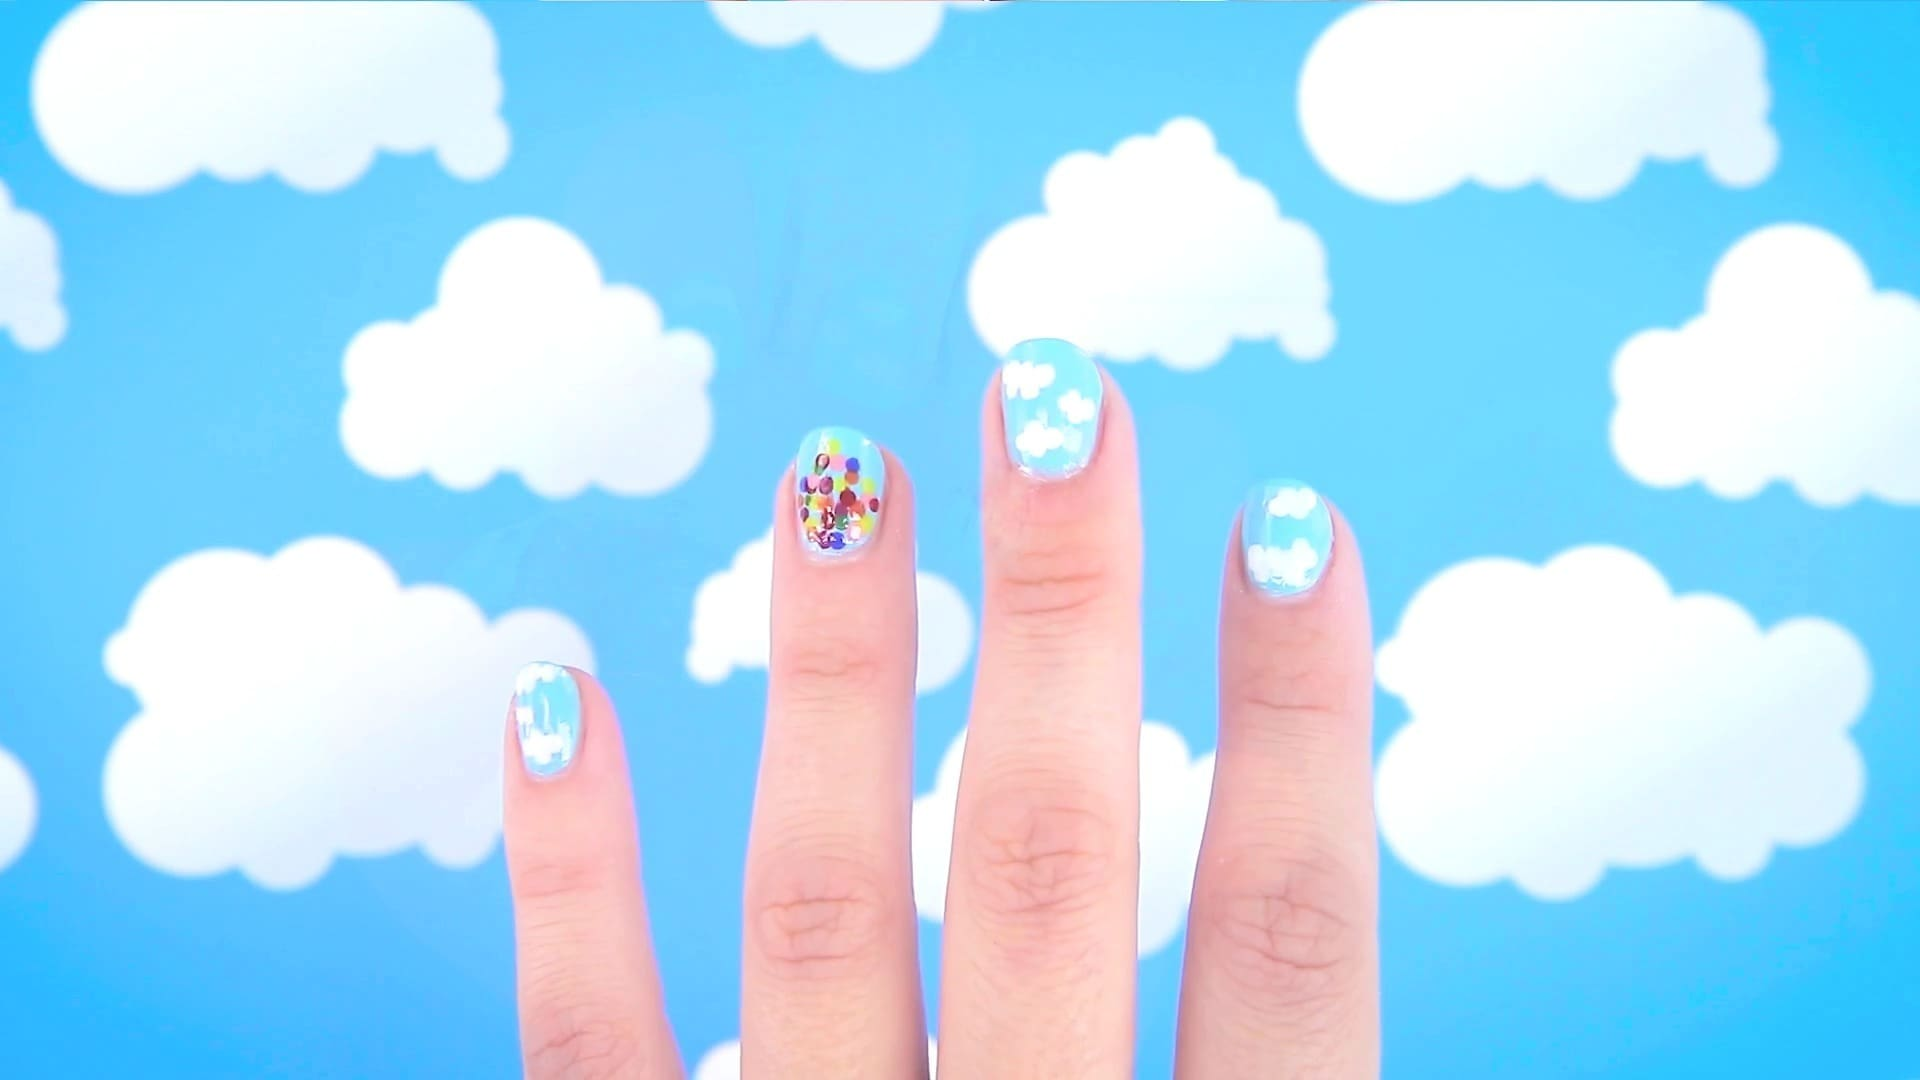 UP-Inspired Nail Art